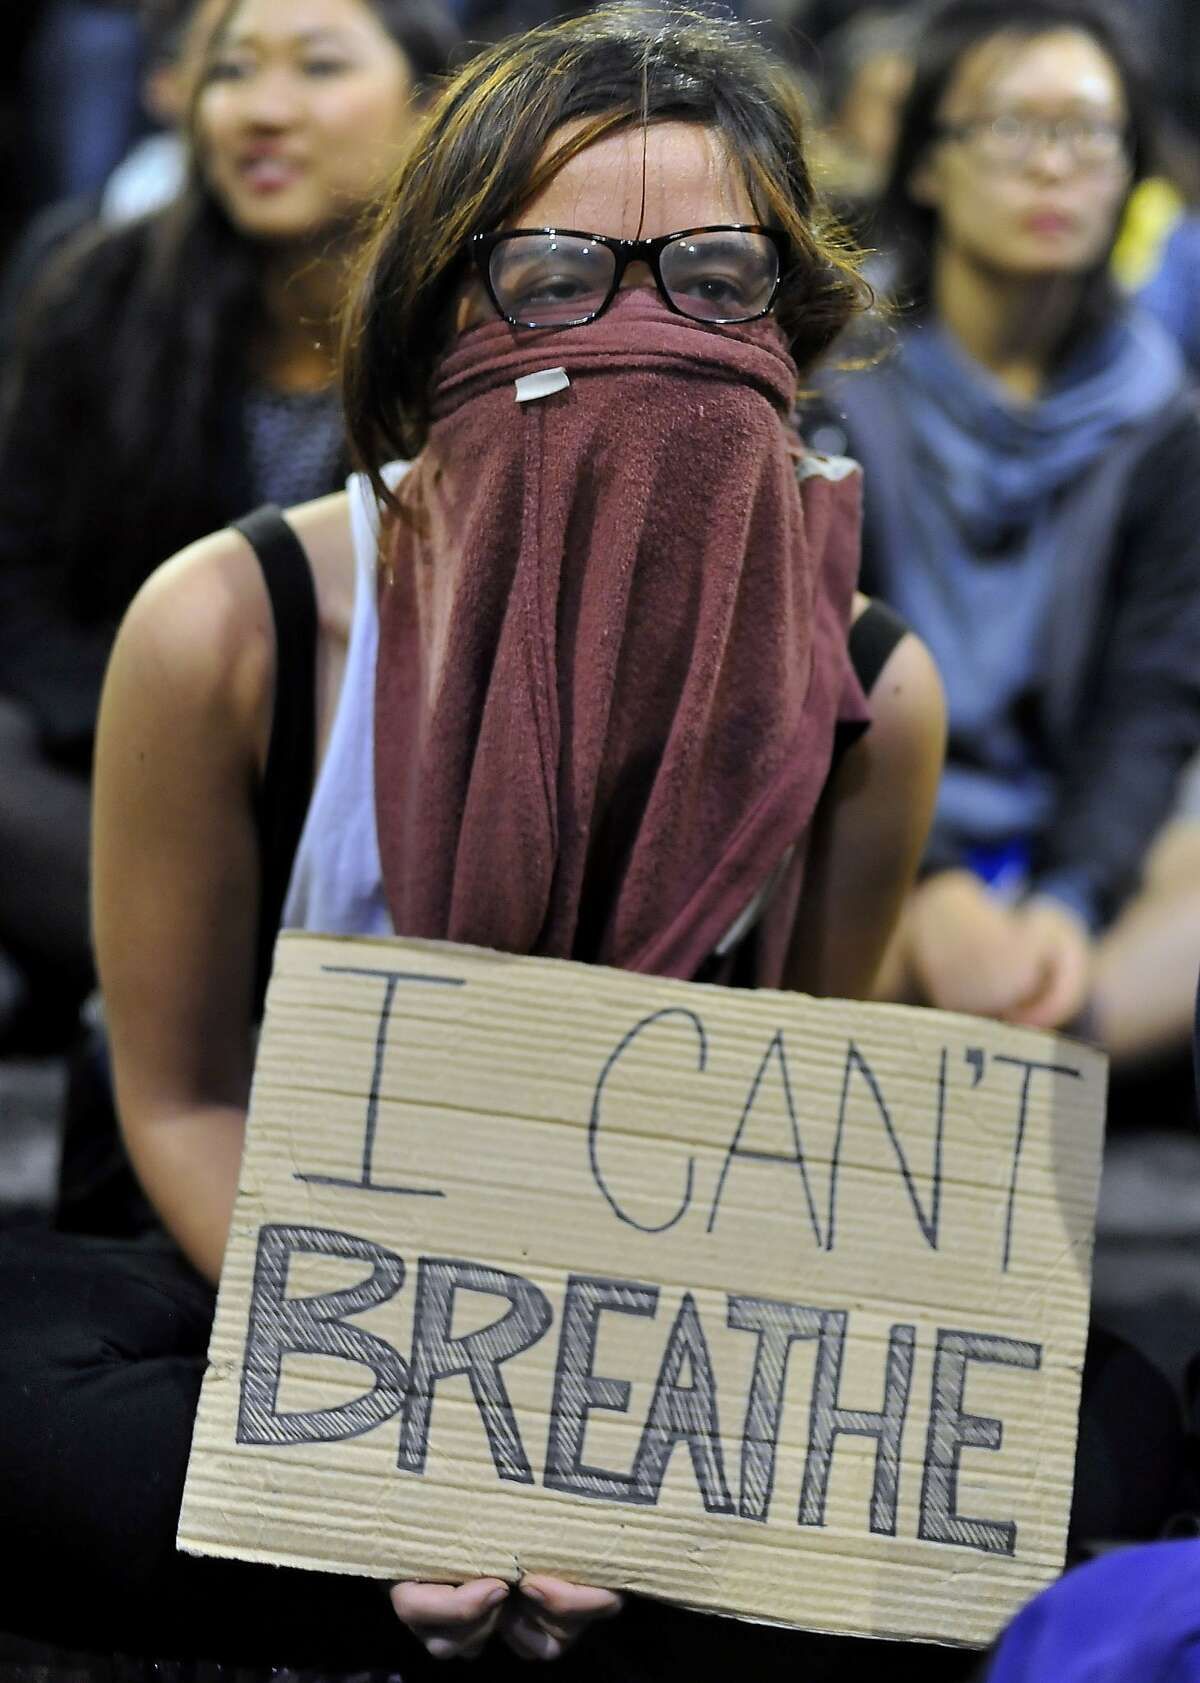 A girl who declined to give her name holds a sign in front of a police skirmish line during demonstrations in Berkeley, California on Saturday, December 6, 2014. Protesting continued through the night in response to the grand jury verdicts in the shooting death of Michael Brown in Ferguson, Missouri and the chokehold death of Eric Garner in New York City.